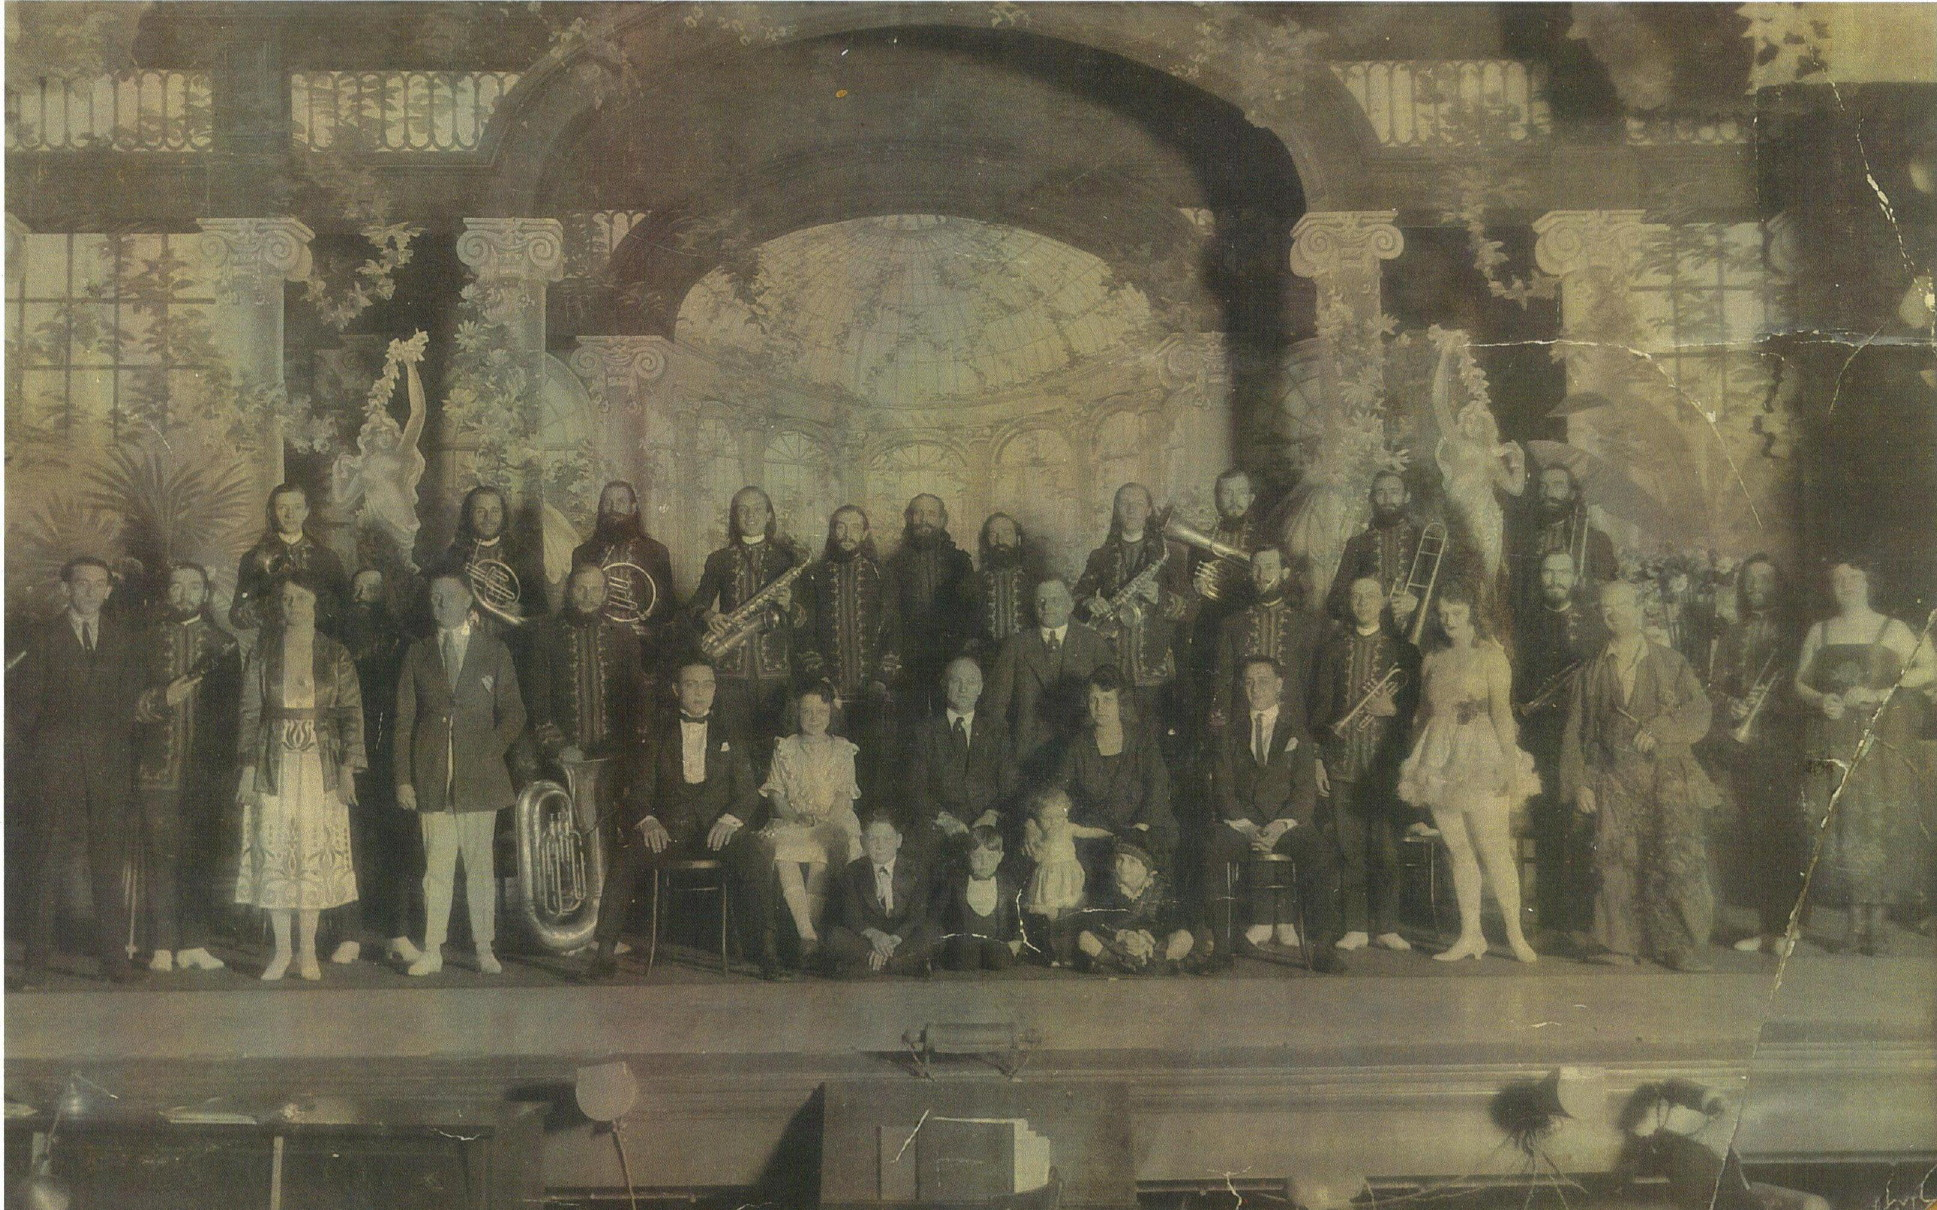 Pantages Road Show, 1921 (Capps Family front center).